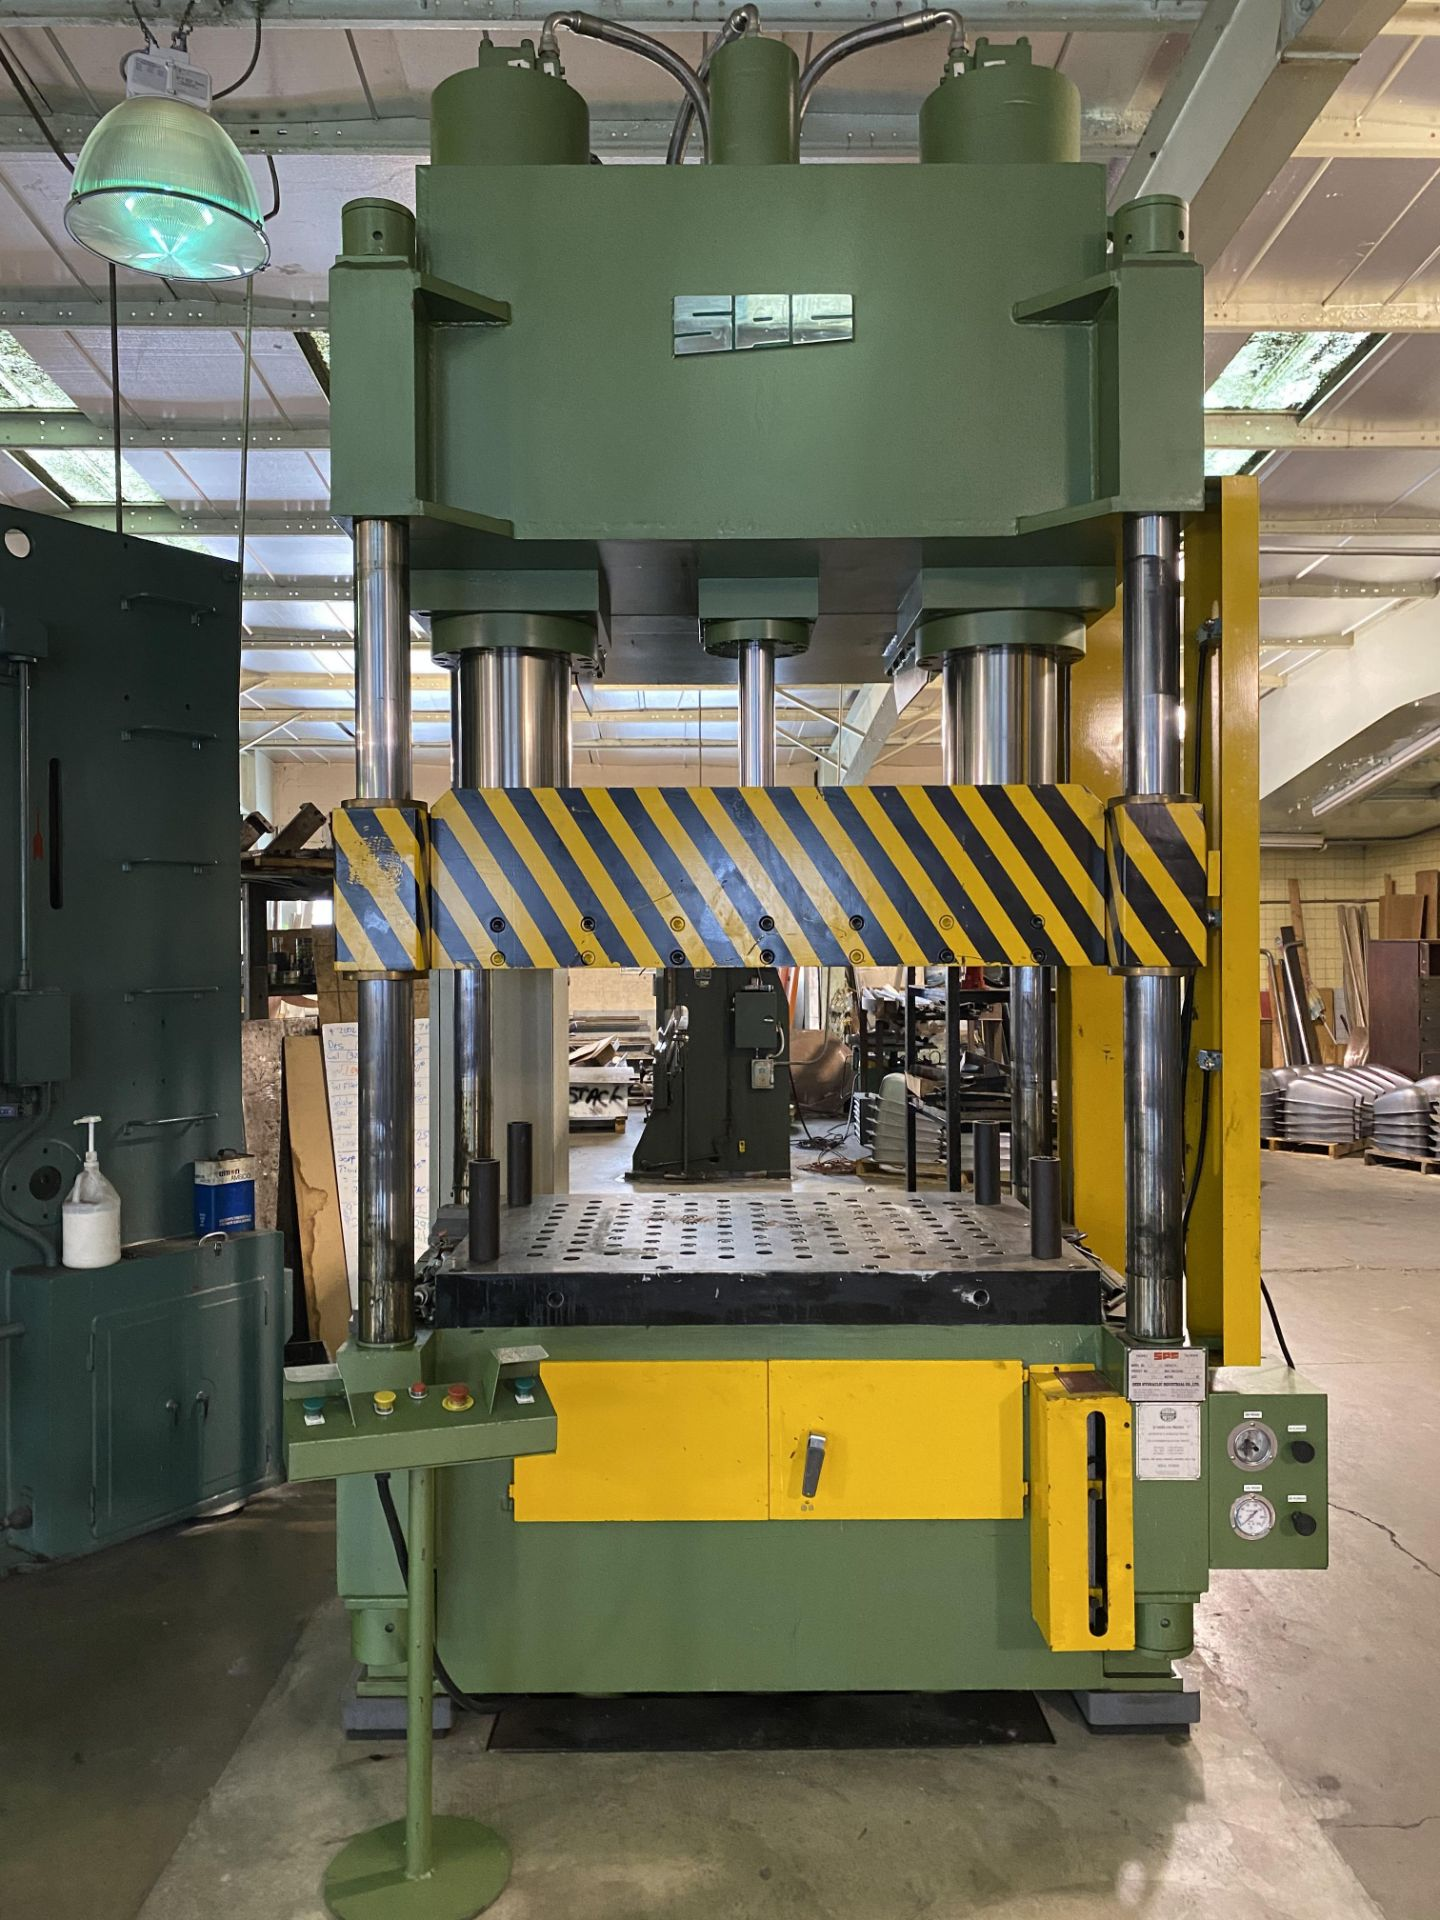 Lot 0A - 2001 SUTHERLAND AUTO STAMPER 200 TON DEEP DRAW HYDRAULIC PRESS, MODEL HP-200, 200 TON CAPACITY